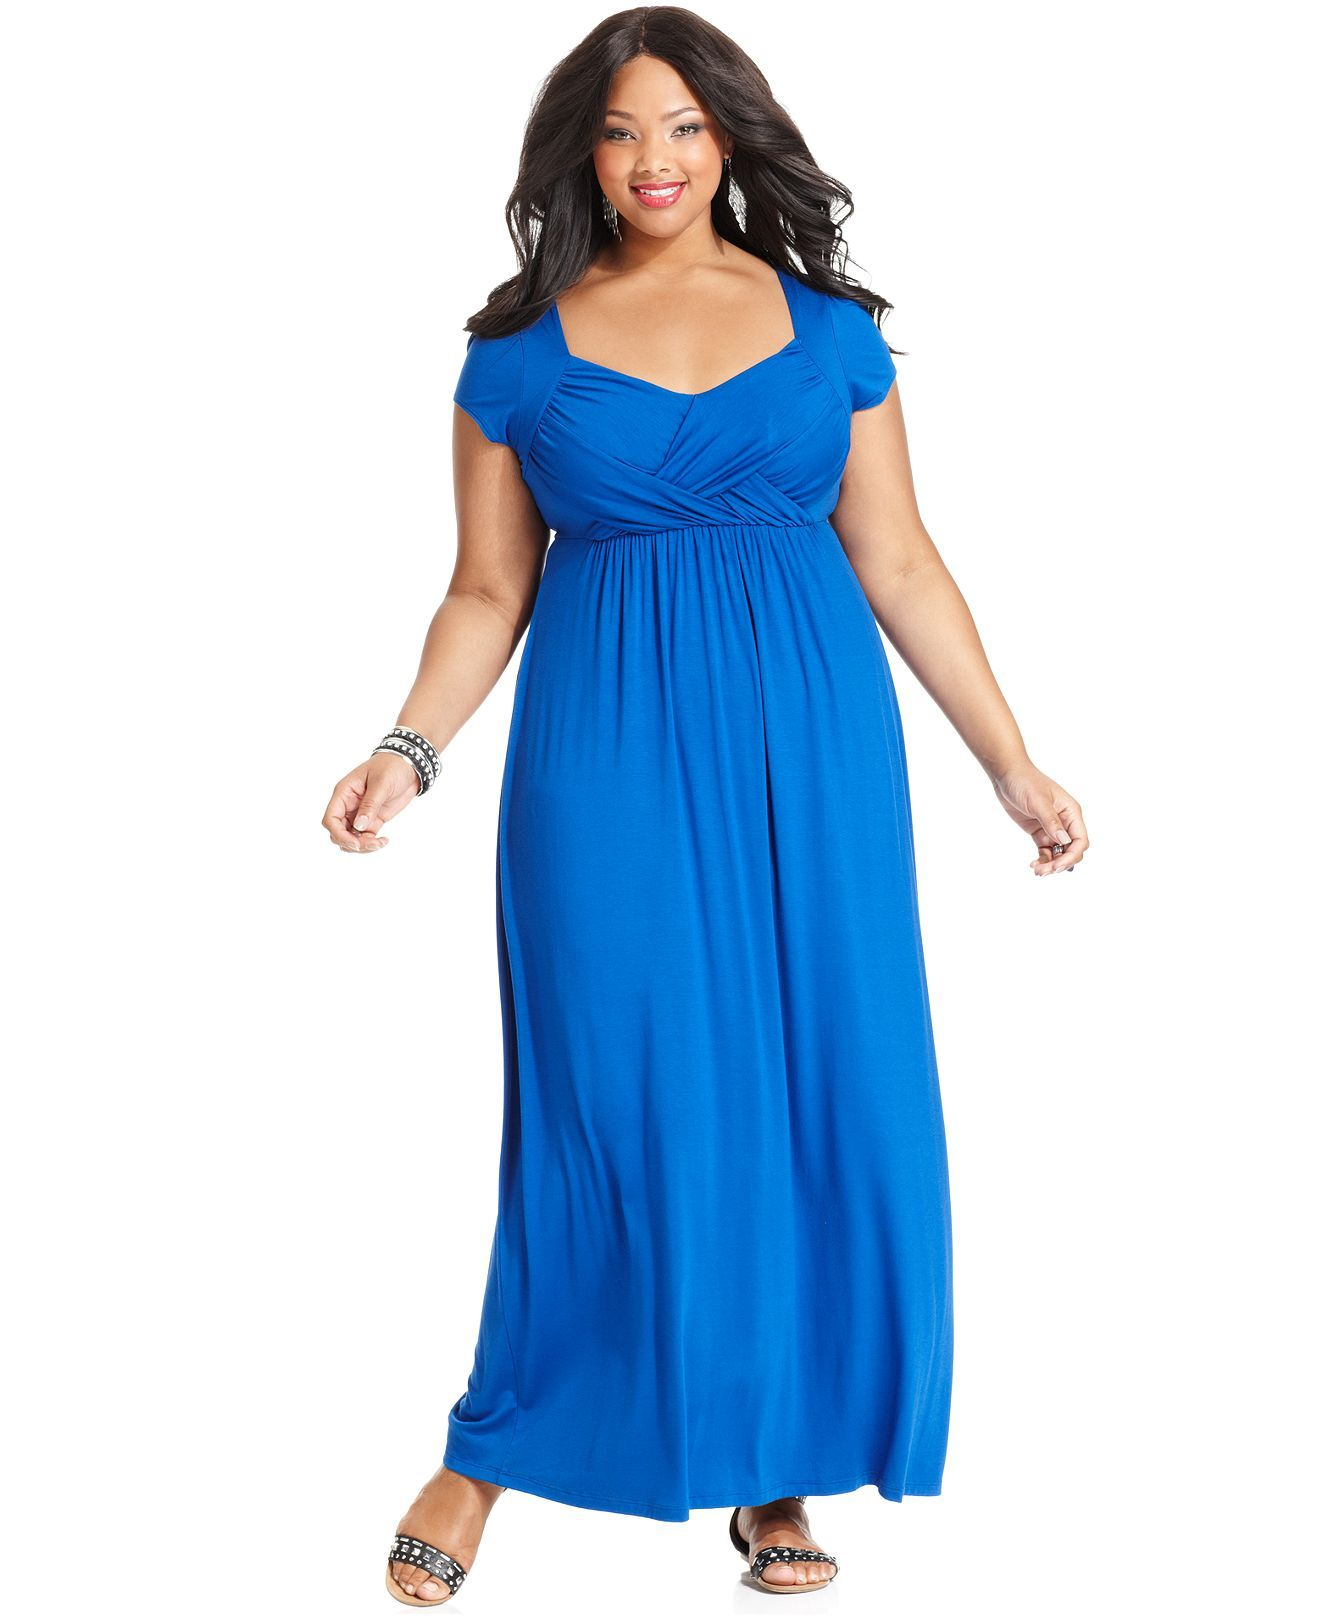 Soprano Plus Size Dress, Cap-Sleeve Empire-Waist Maxi - Plus ...